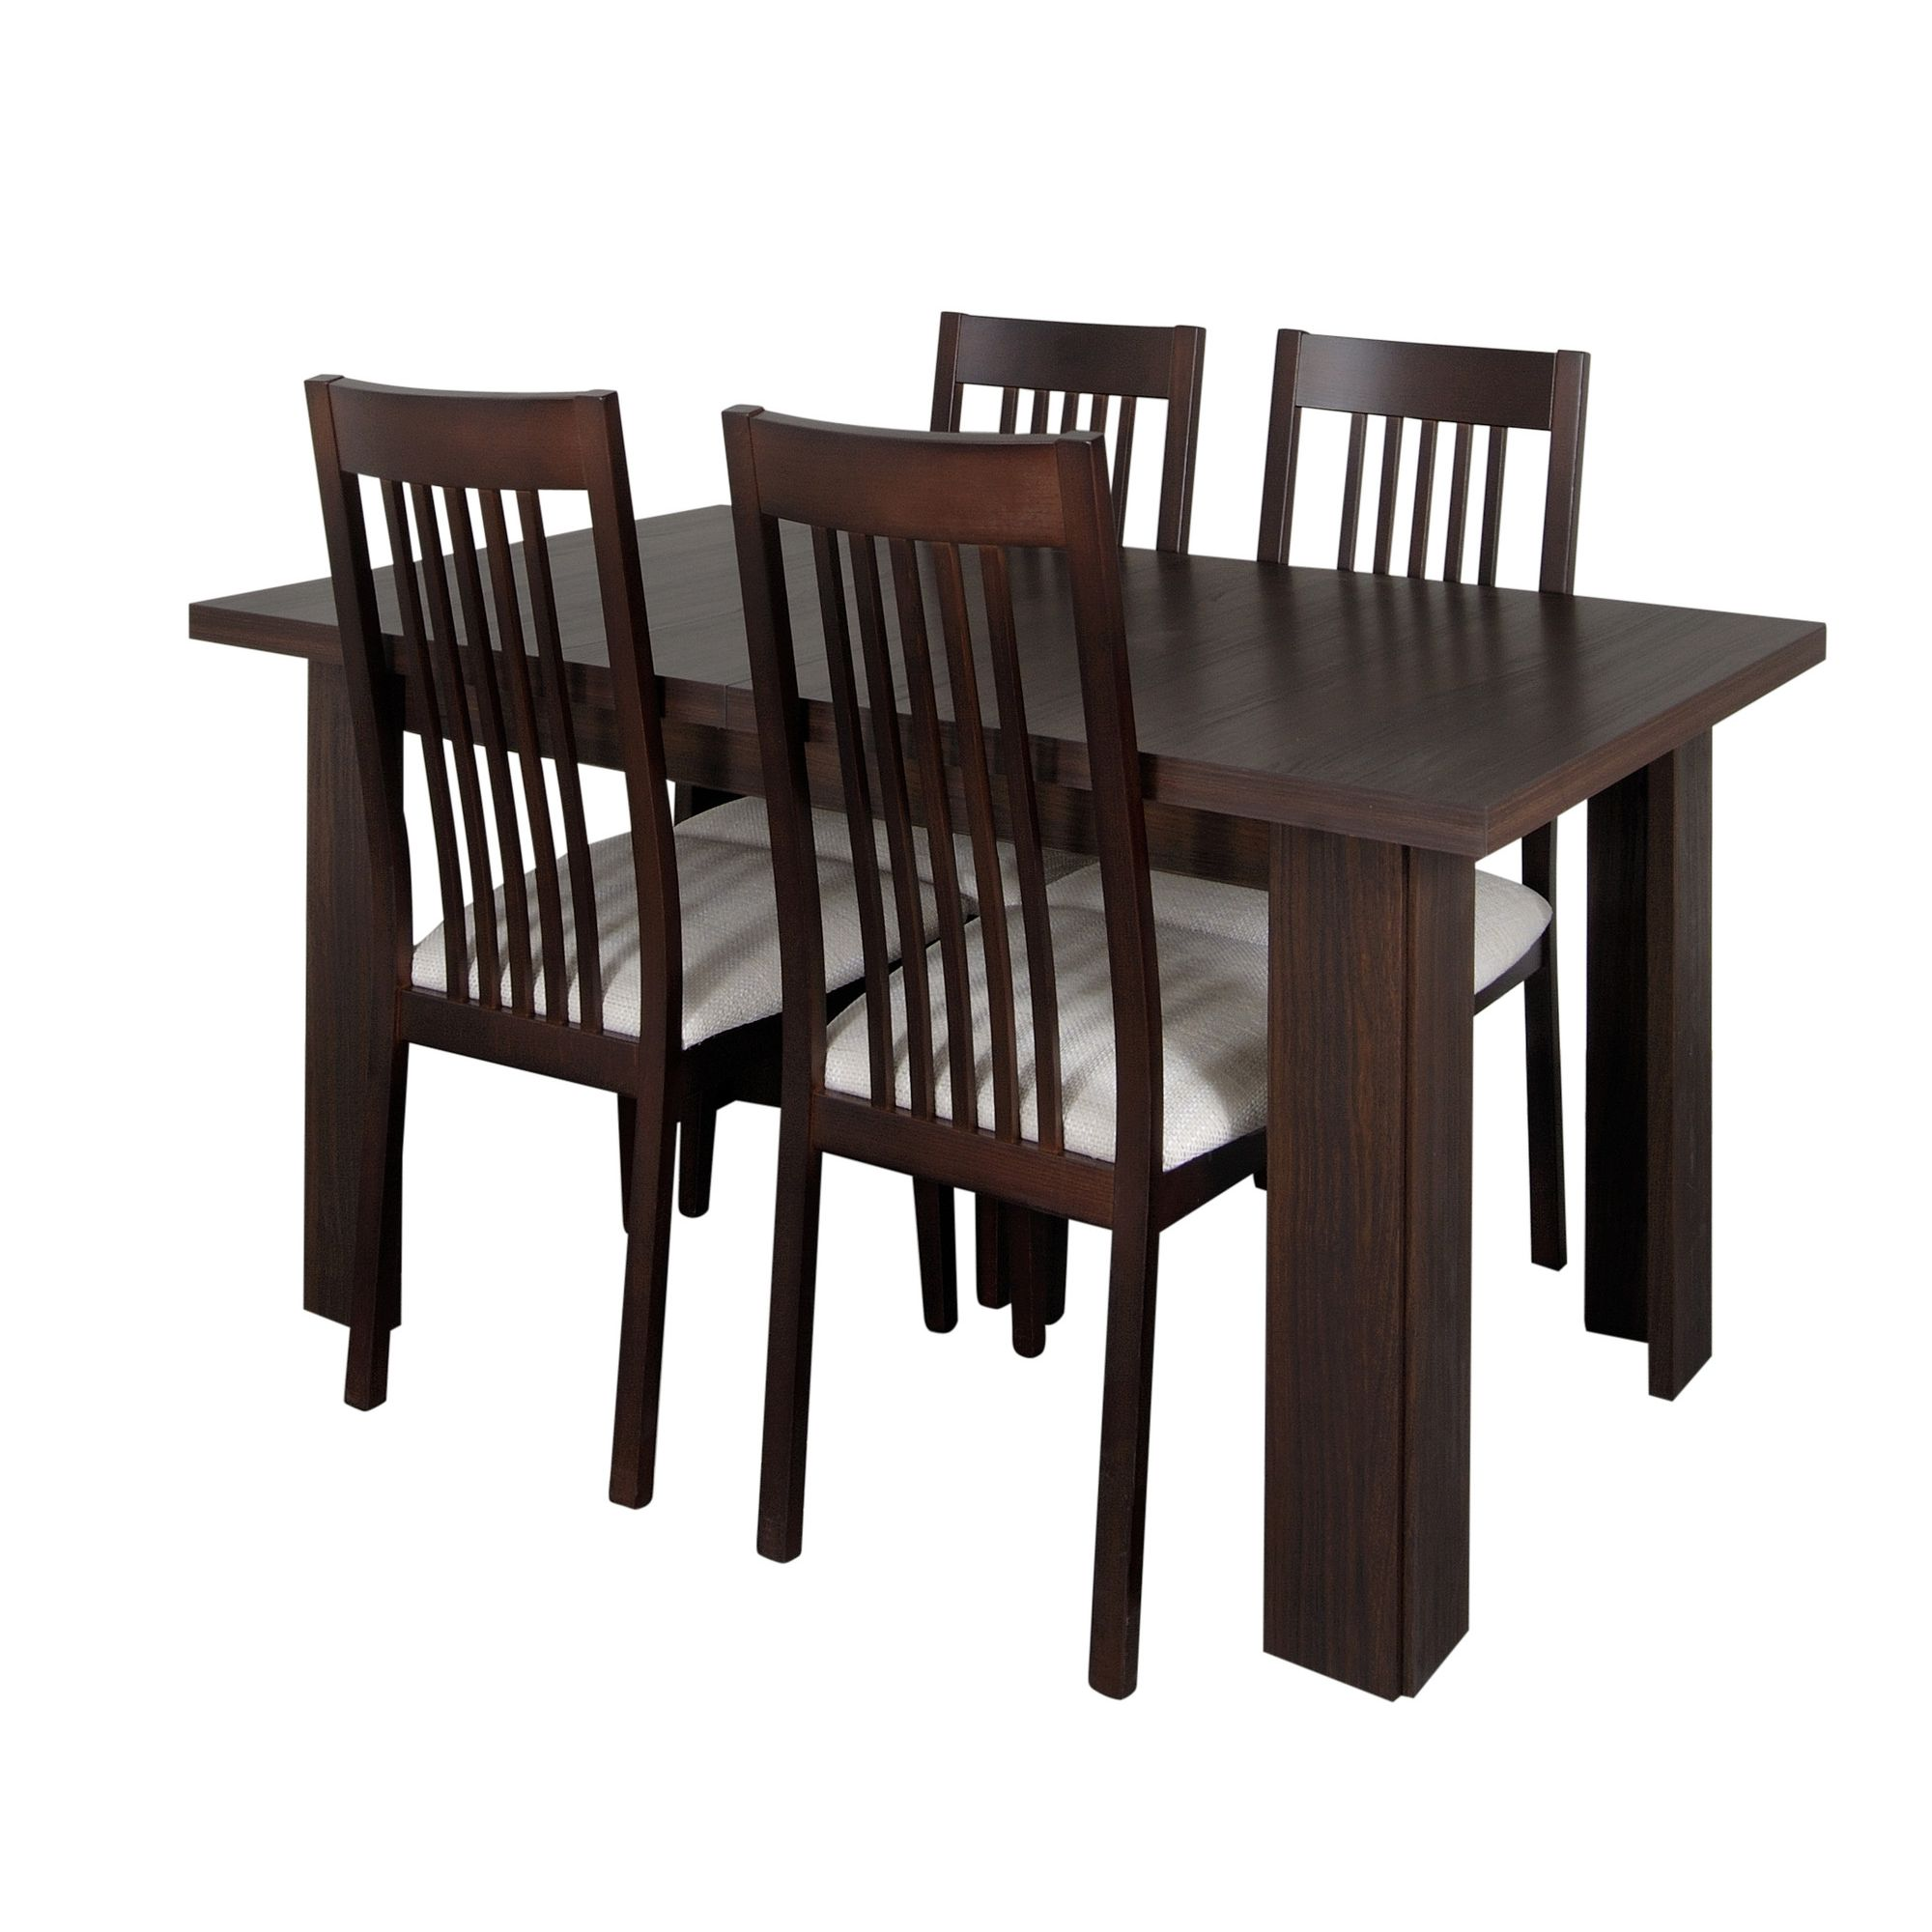 Other Caxton Royale 4 Leg Extending 4 Chair Dining Set in Dark Oak